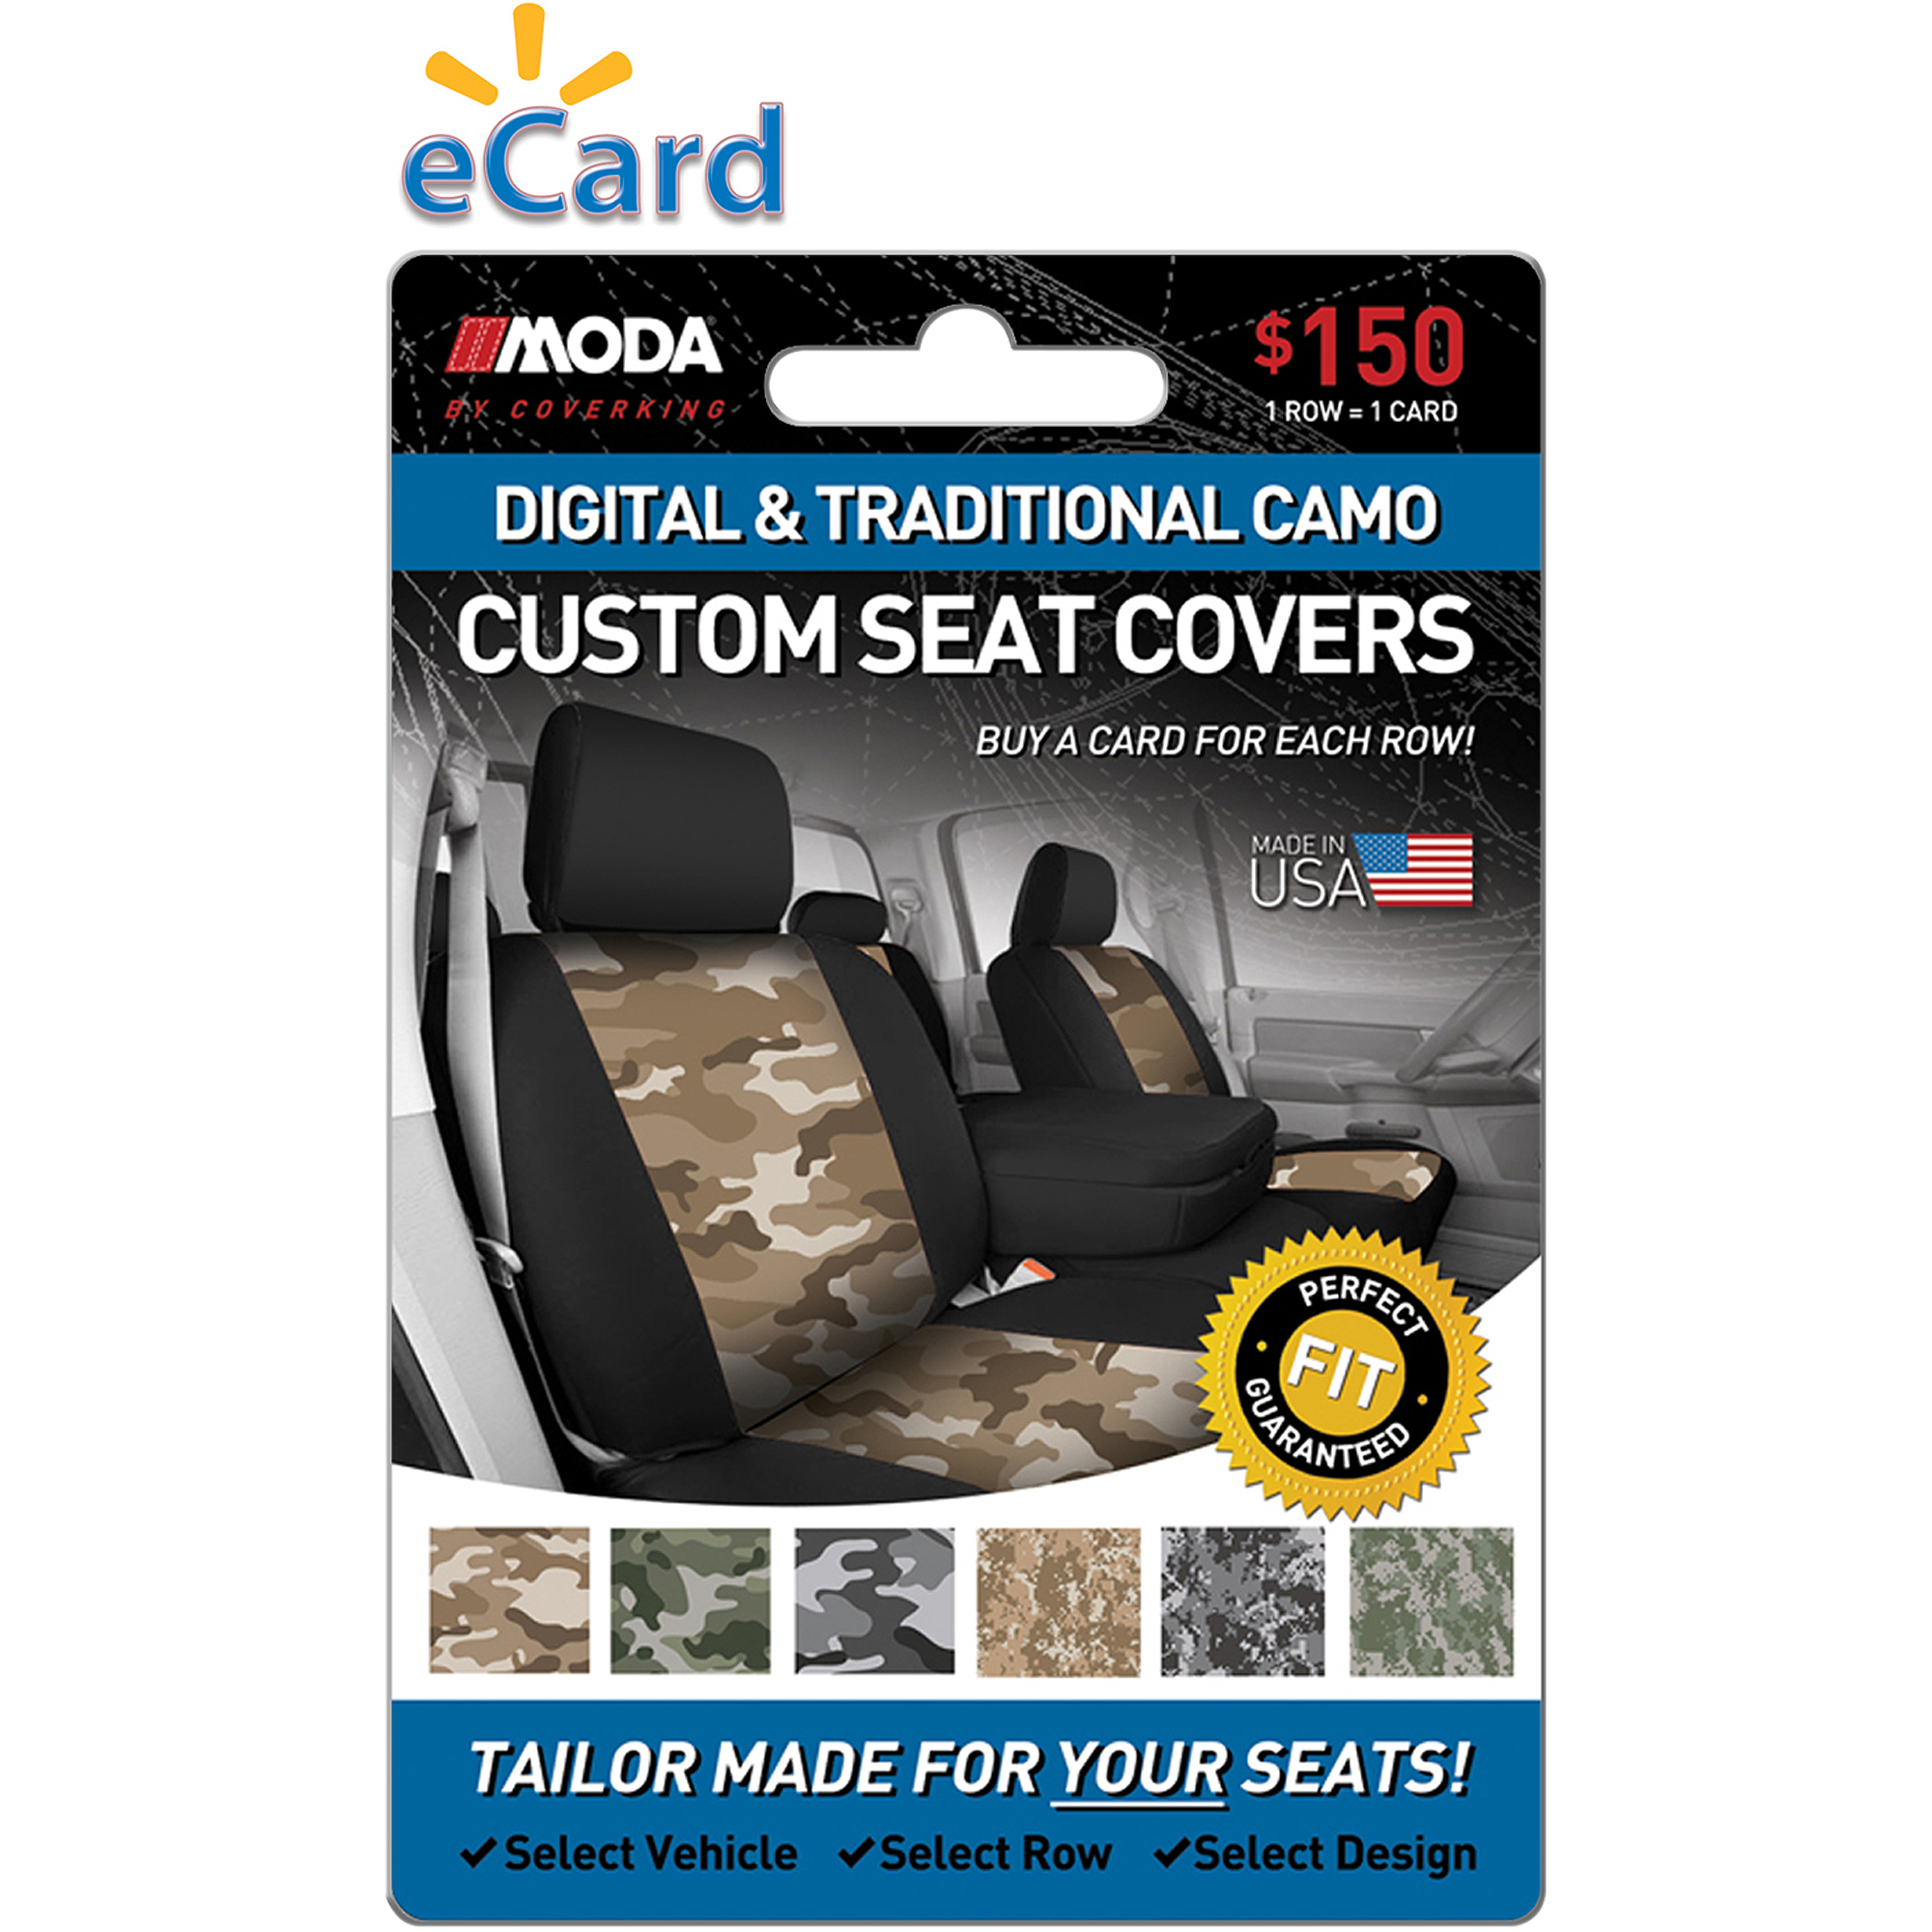 MODA by Coverking Designer Custom Seat Covers Camo $150 (Email Delivery)